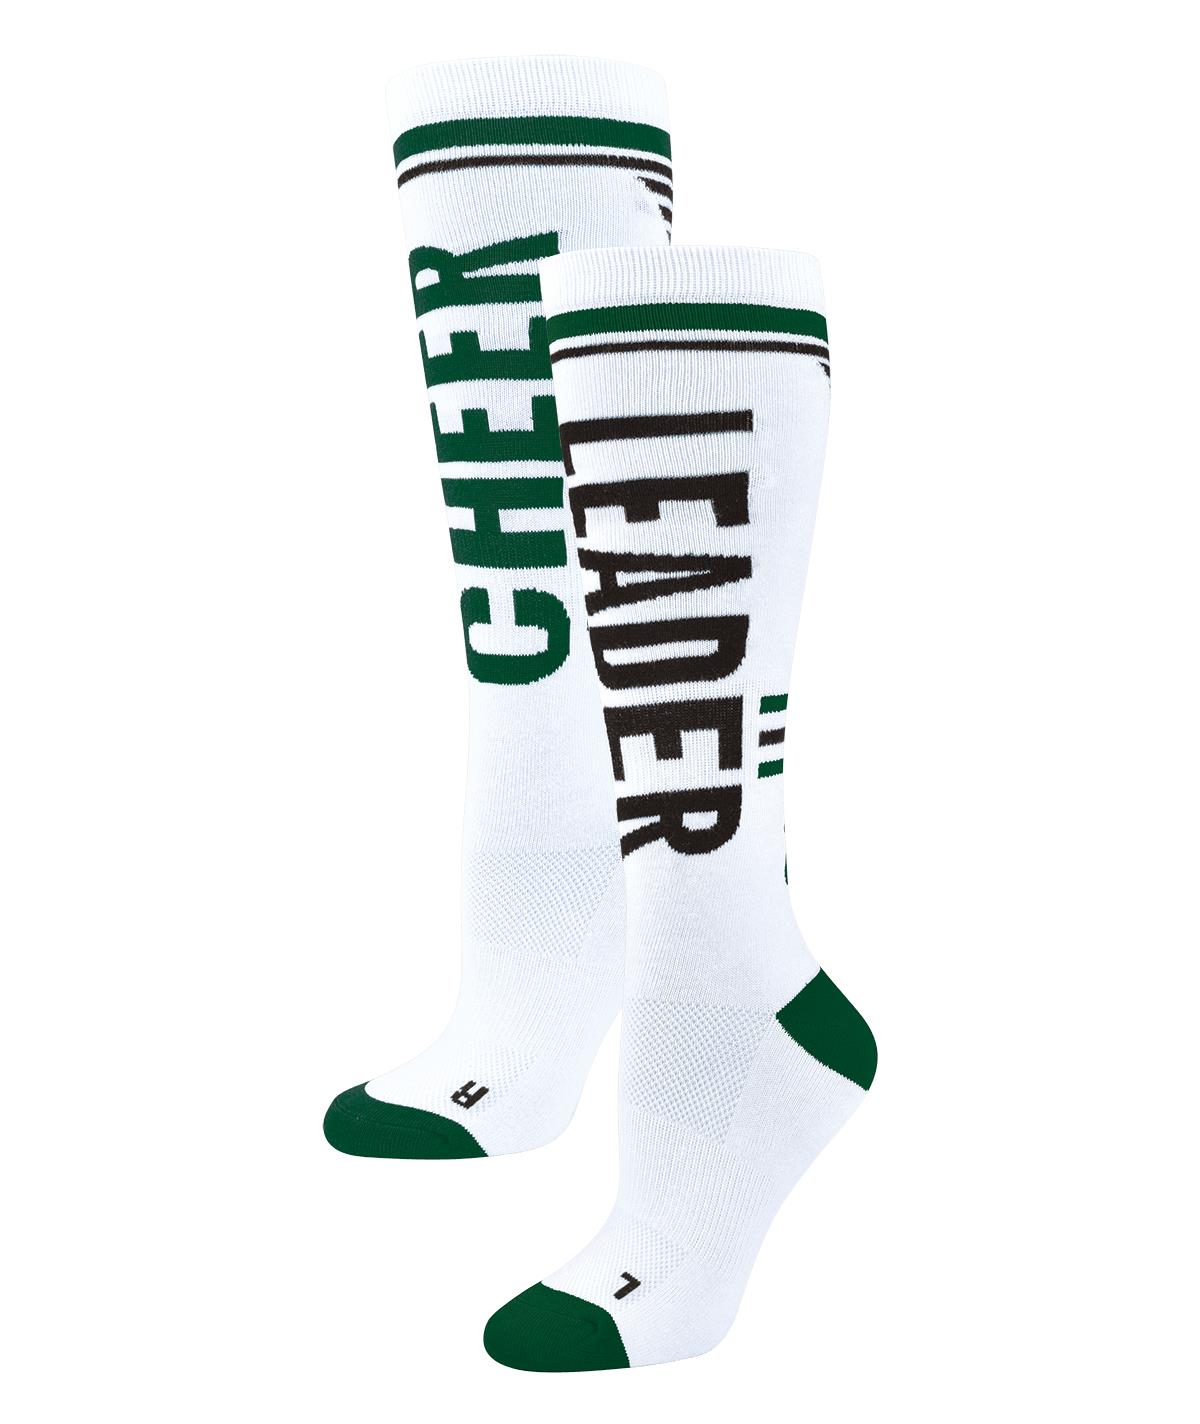 Chassé Knee-High Cheer Mix Sock